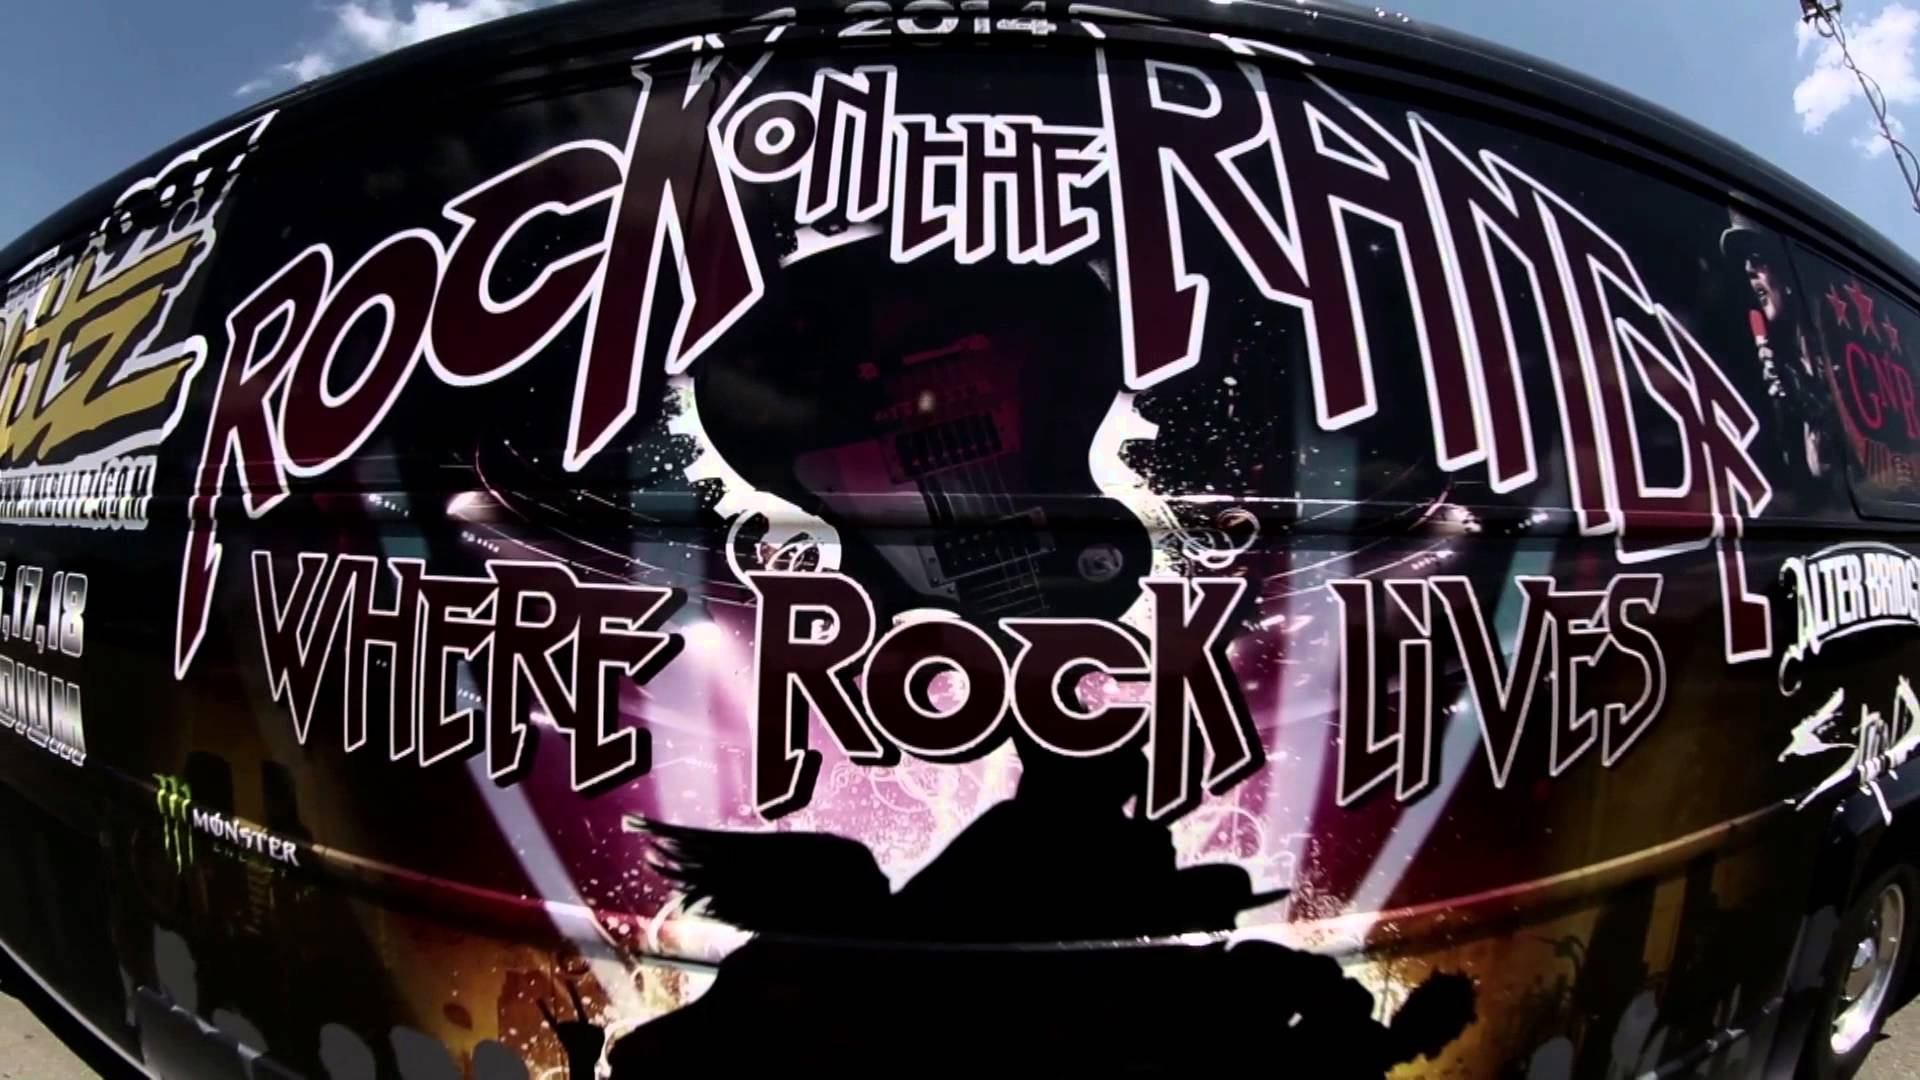 Photos and tweets to get you ready for Rock on the Range's big weekend